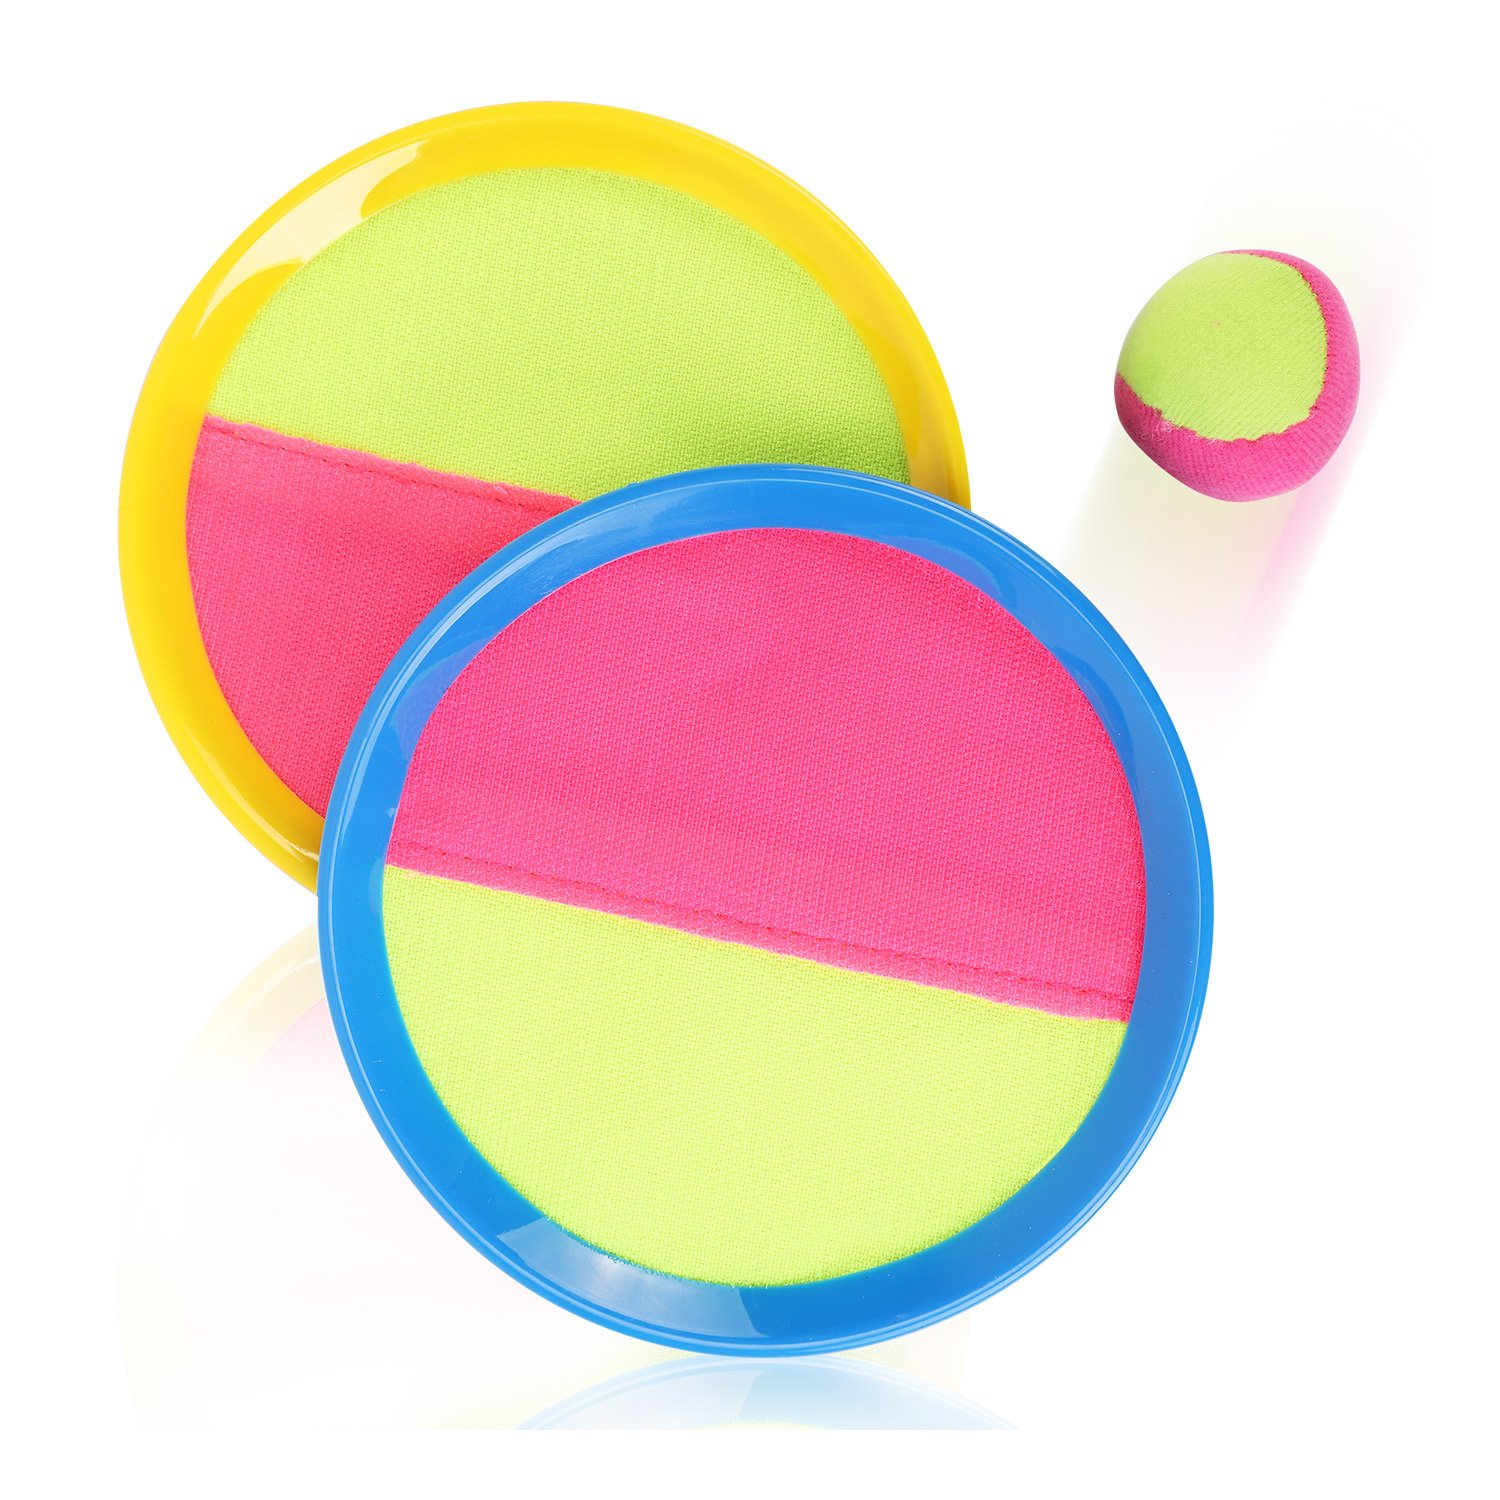 Liberty Imports Classic Self-Stick Toss and Catch Target Sports Game Set for Kids with Bean Bag Ball